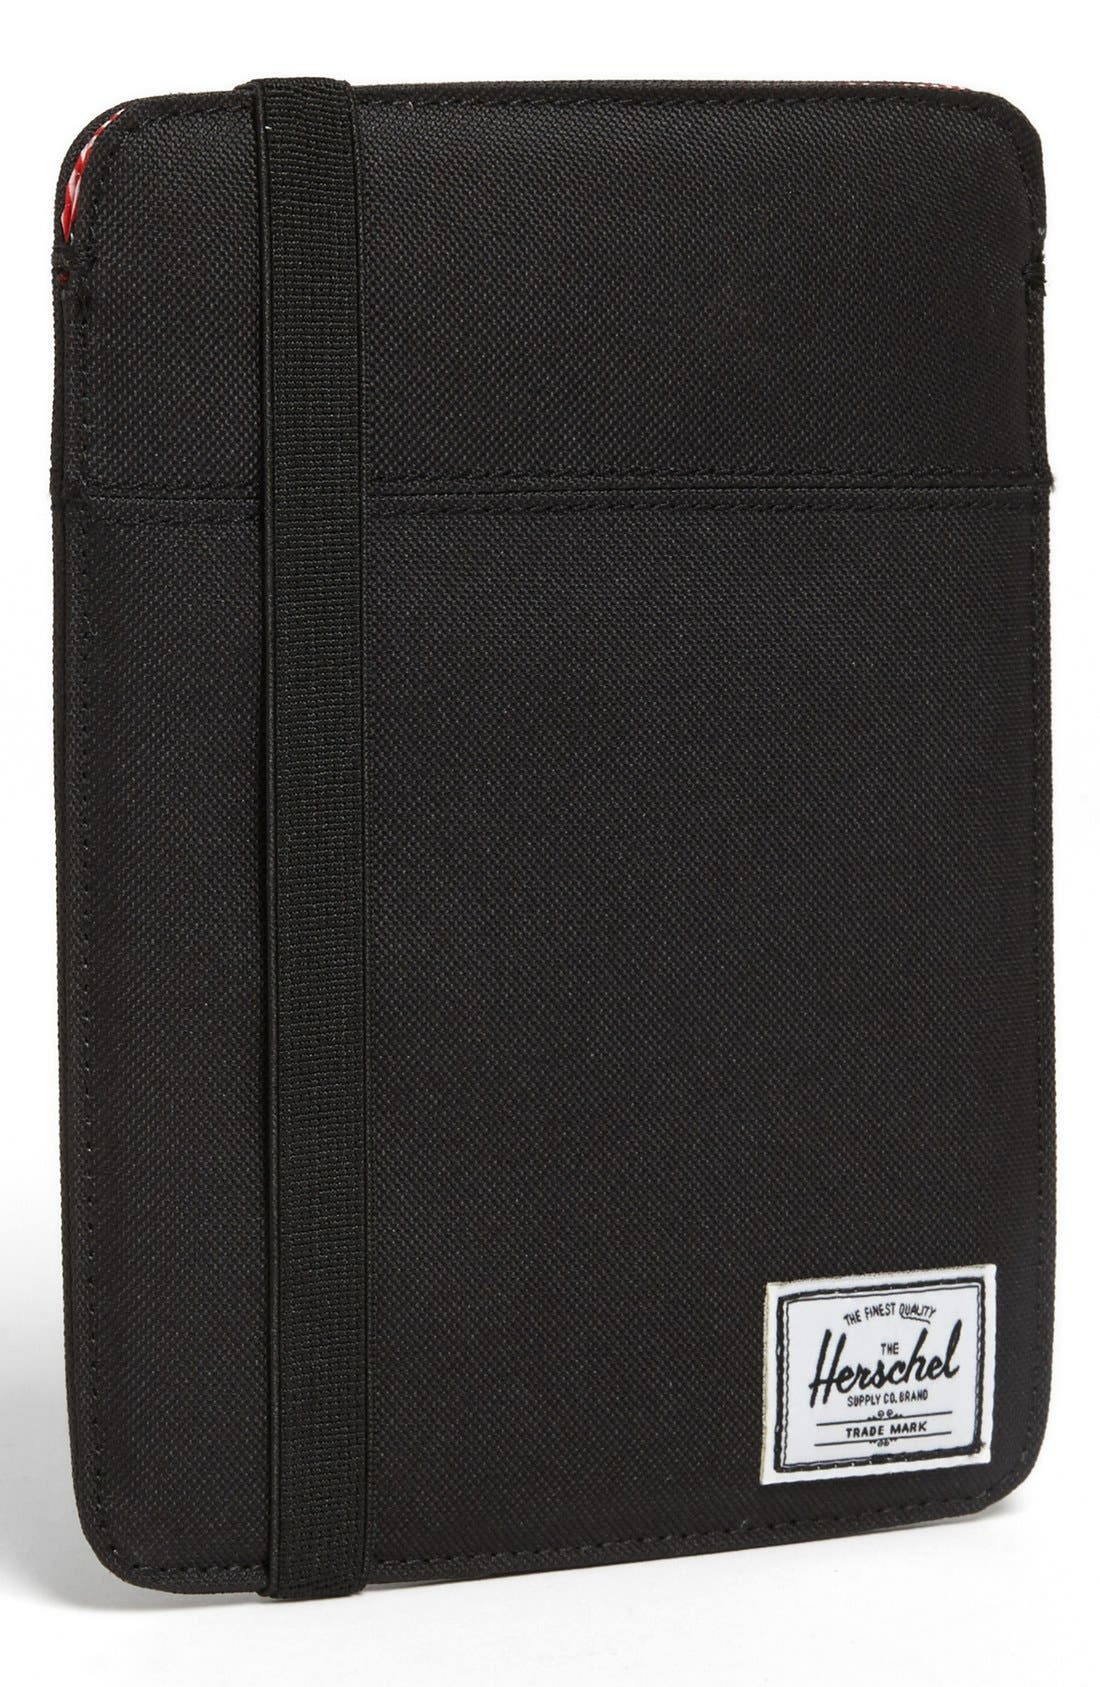 Alternate Image 1 Selected - Herschel Supply Co. 'Cypress' Mini iPad Sleeve